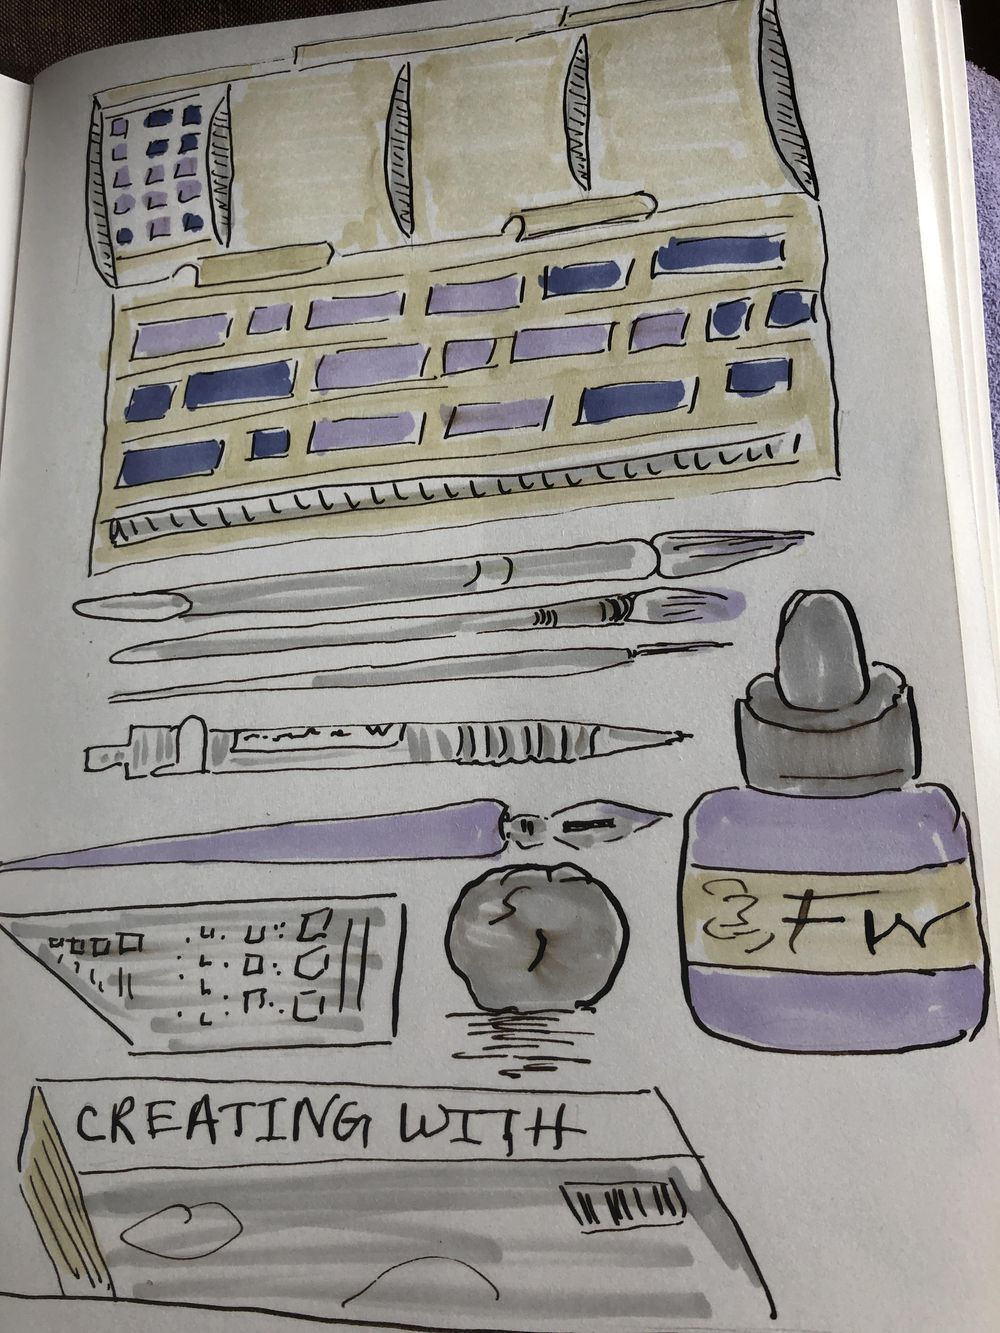 14 days of illustrated journal prompts - image 2 - student project